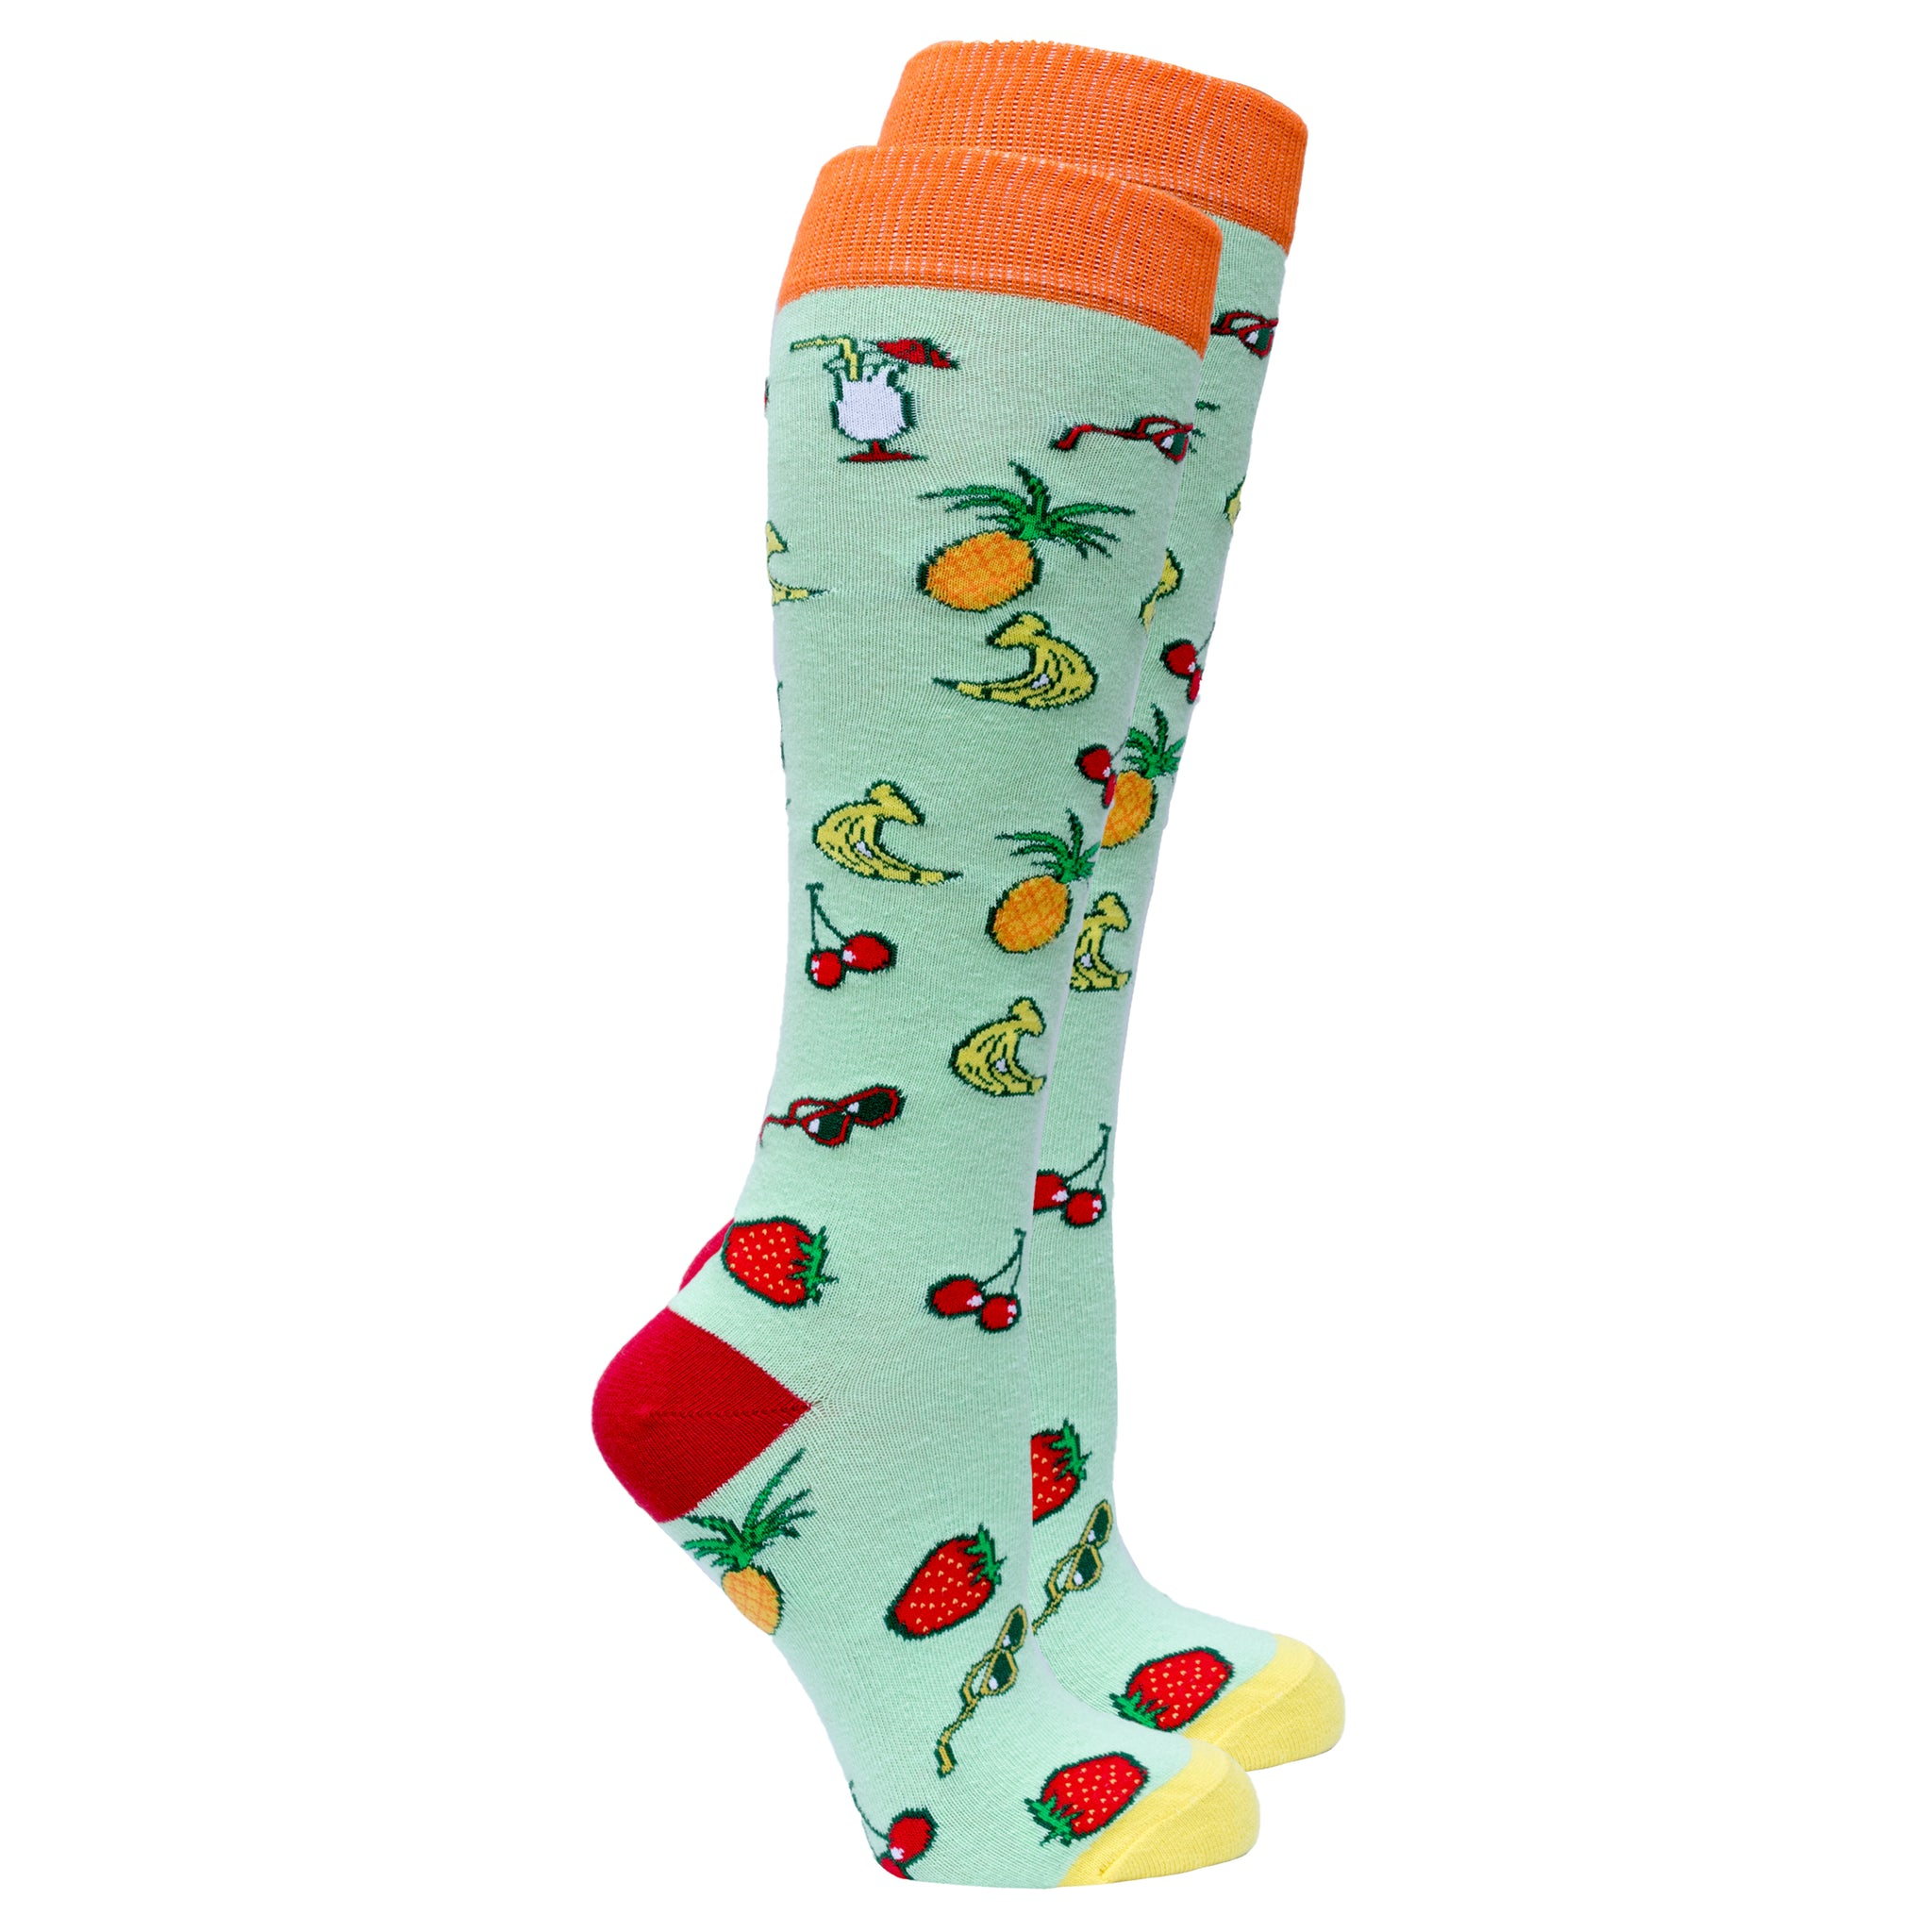 Women's Tropical Knee High Socks